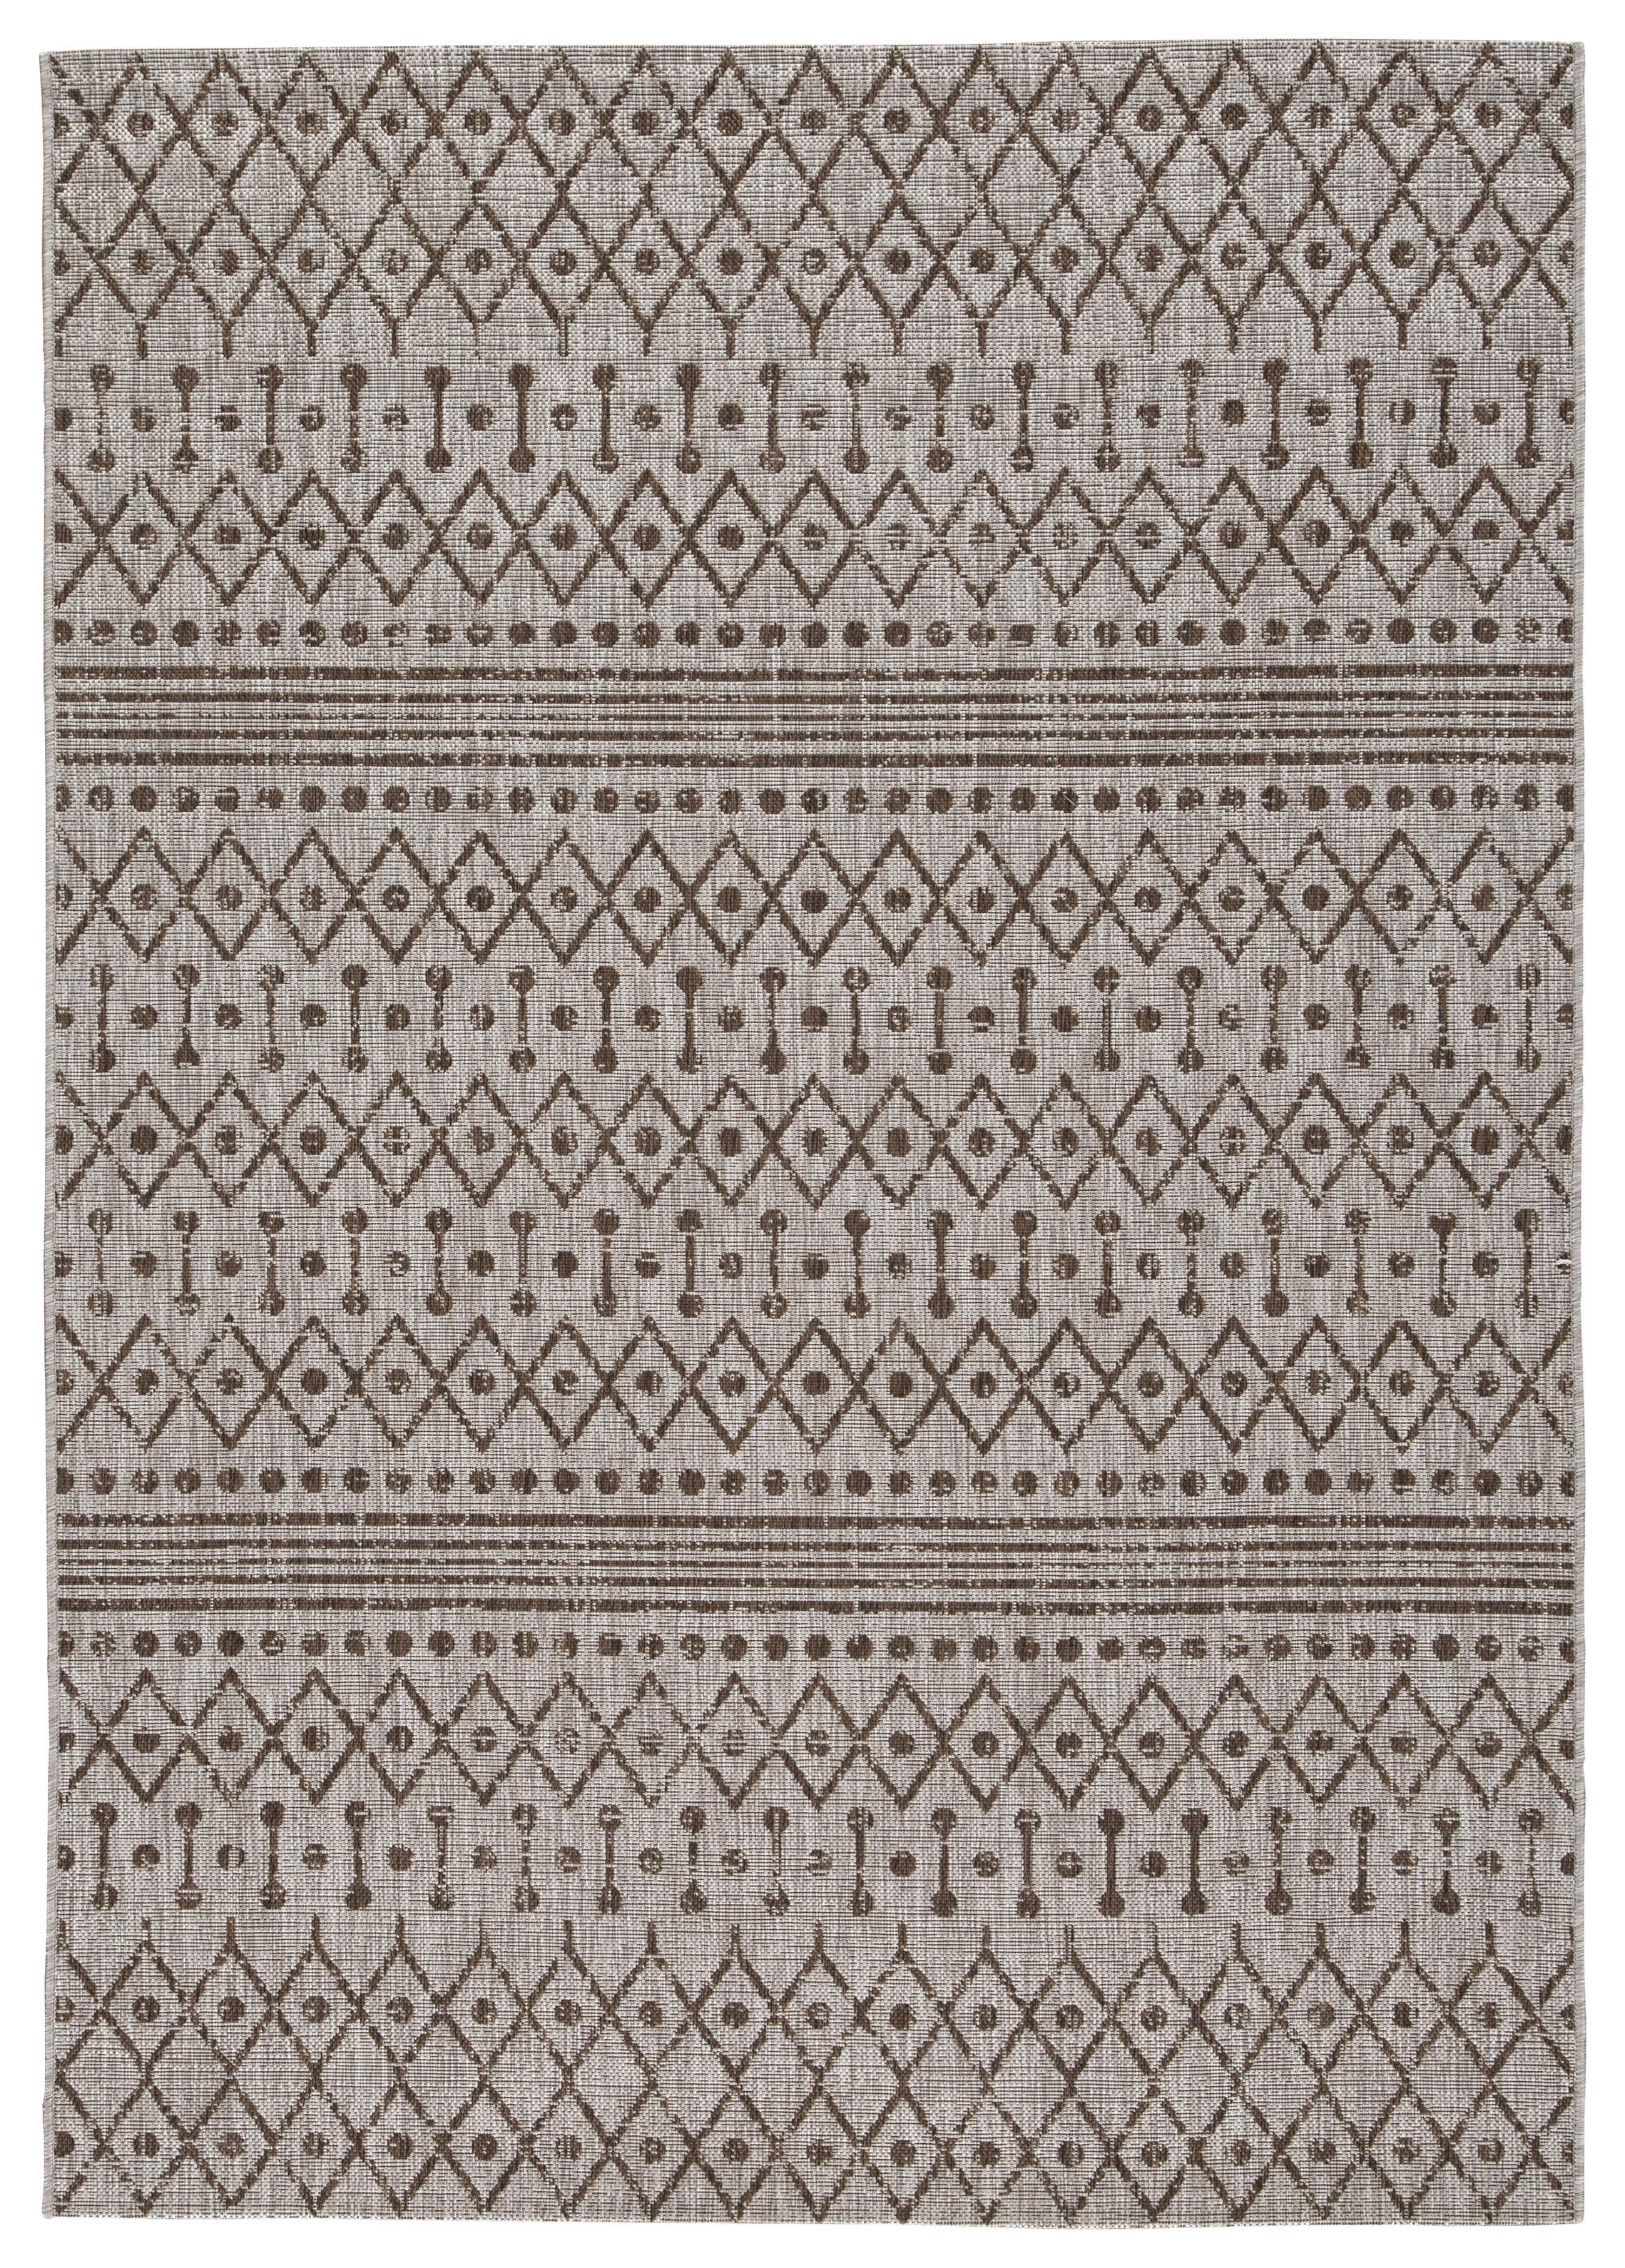 Dubot 8x10 Indoor/Outdoor Rug by Signature Design by Ashley at Sam Levitz Outlet